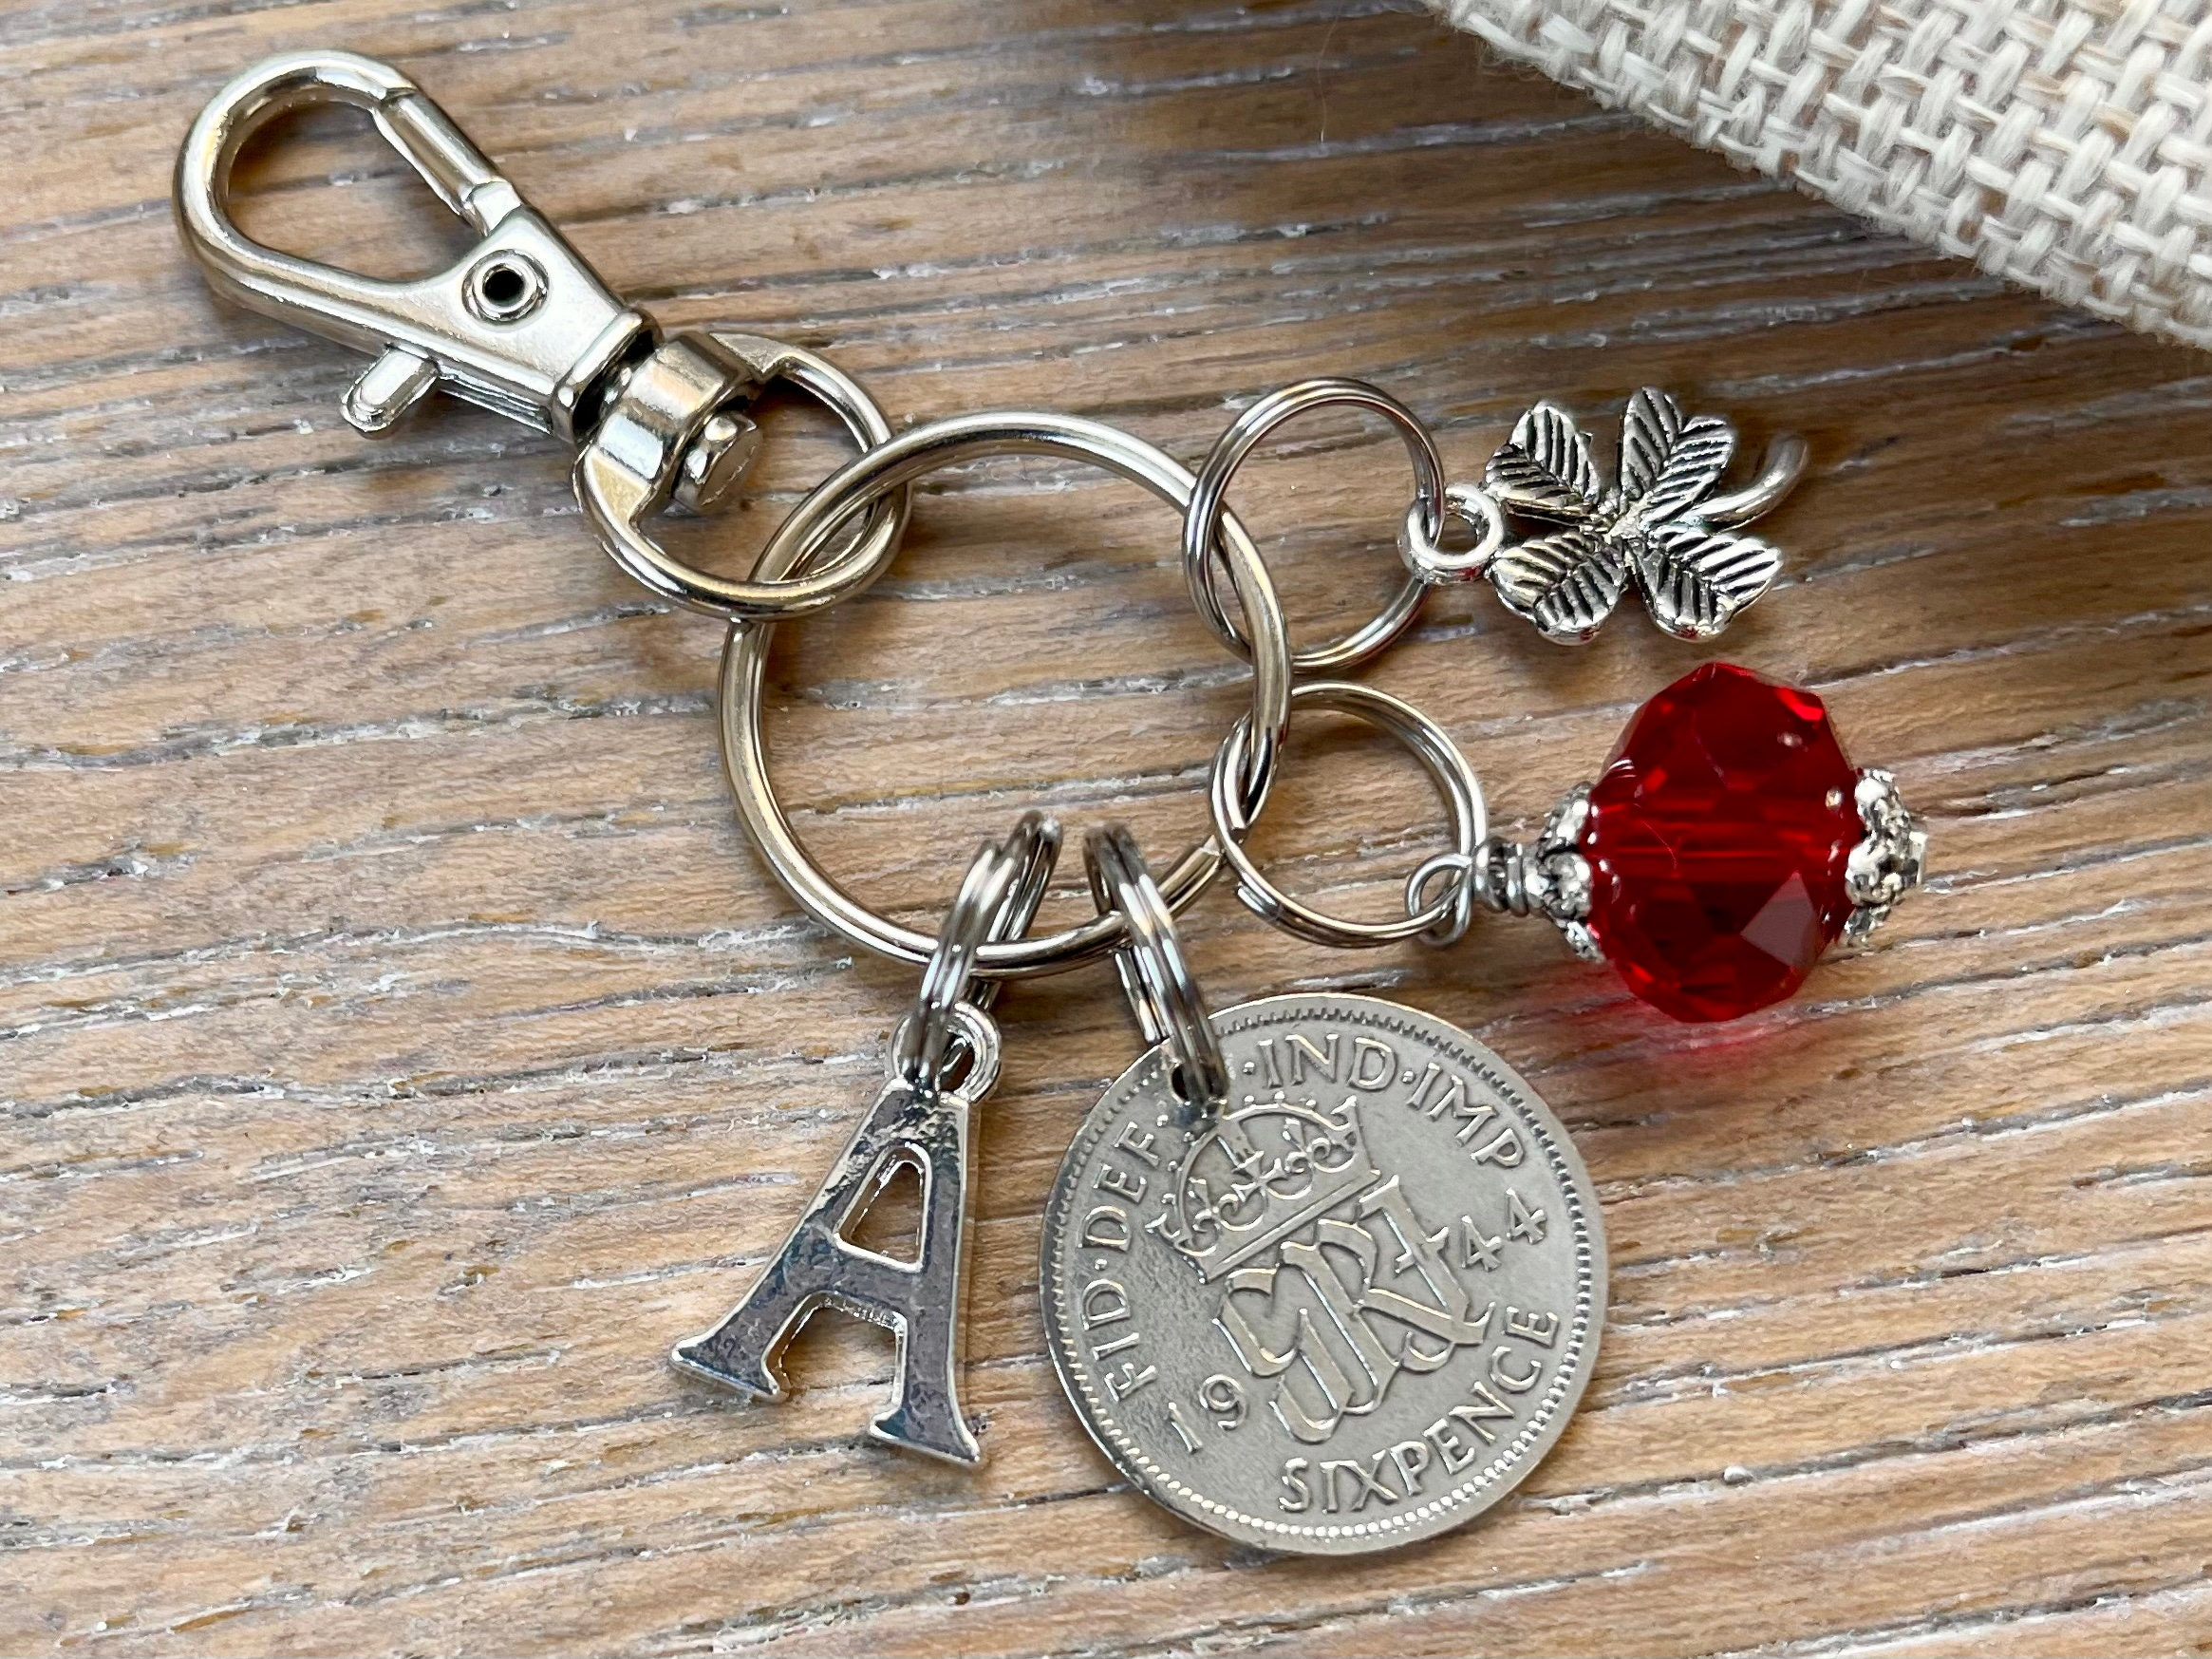 Sixpence Coin 6d 77th Anniversary Present Gift thistle 1944 77th Birthday Sixpence Birth Year Keyring-77th Birthday-Coin Keyring